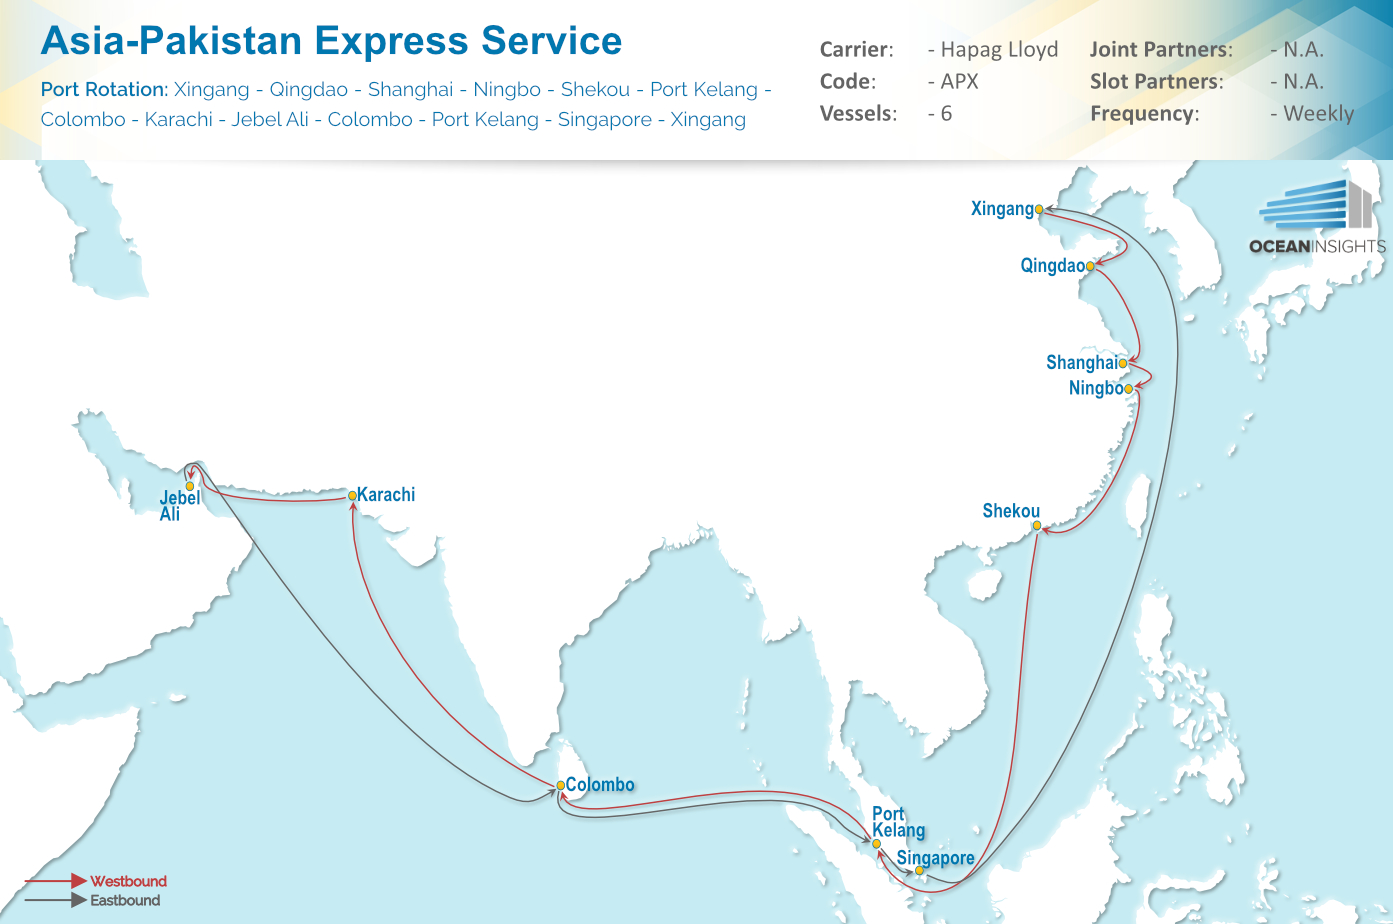 Map Of Asia Karachi.Hapag Lloyd New Asia Pakistan Express Apx Service